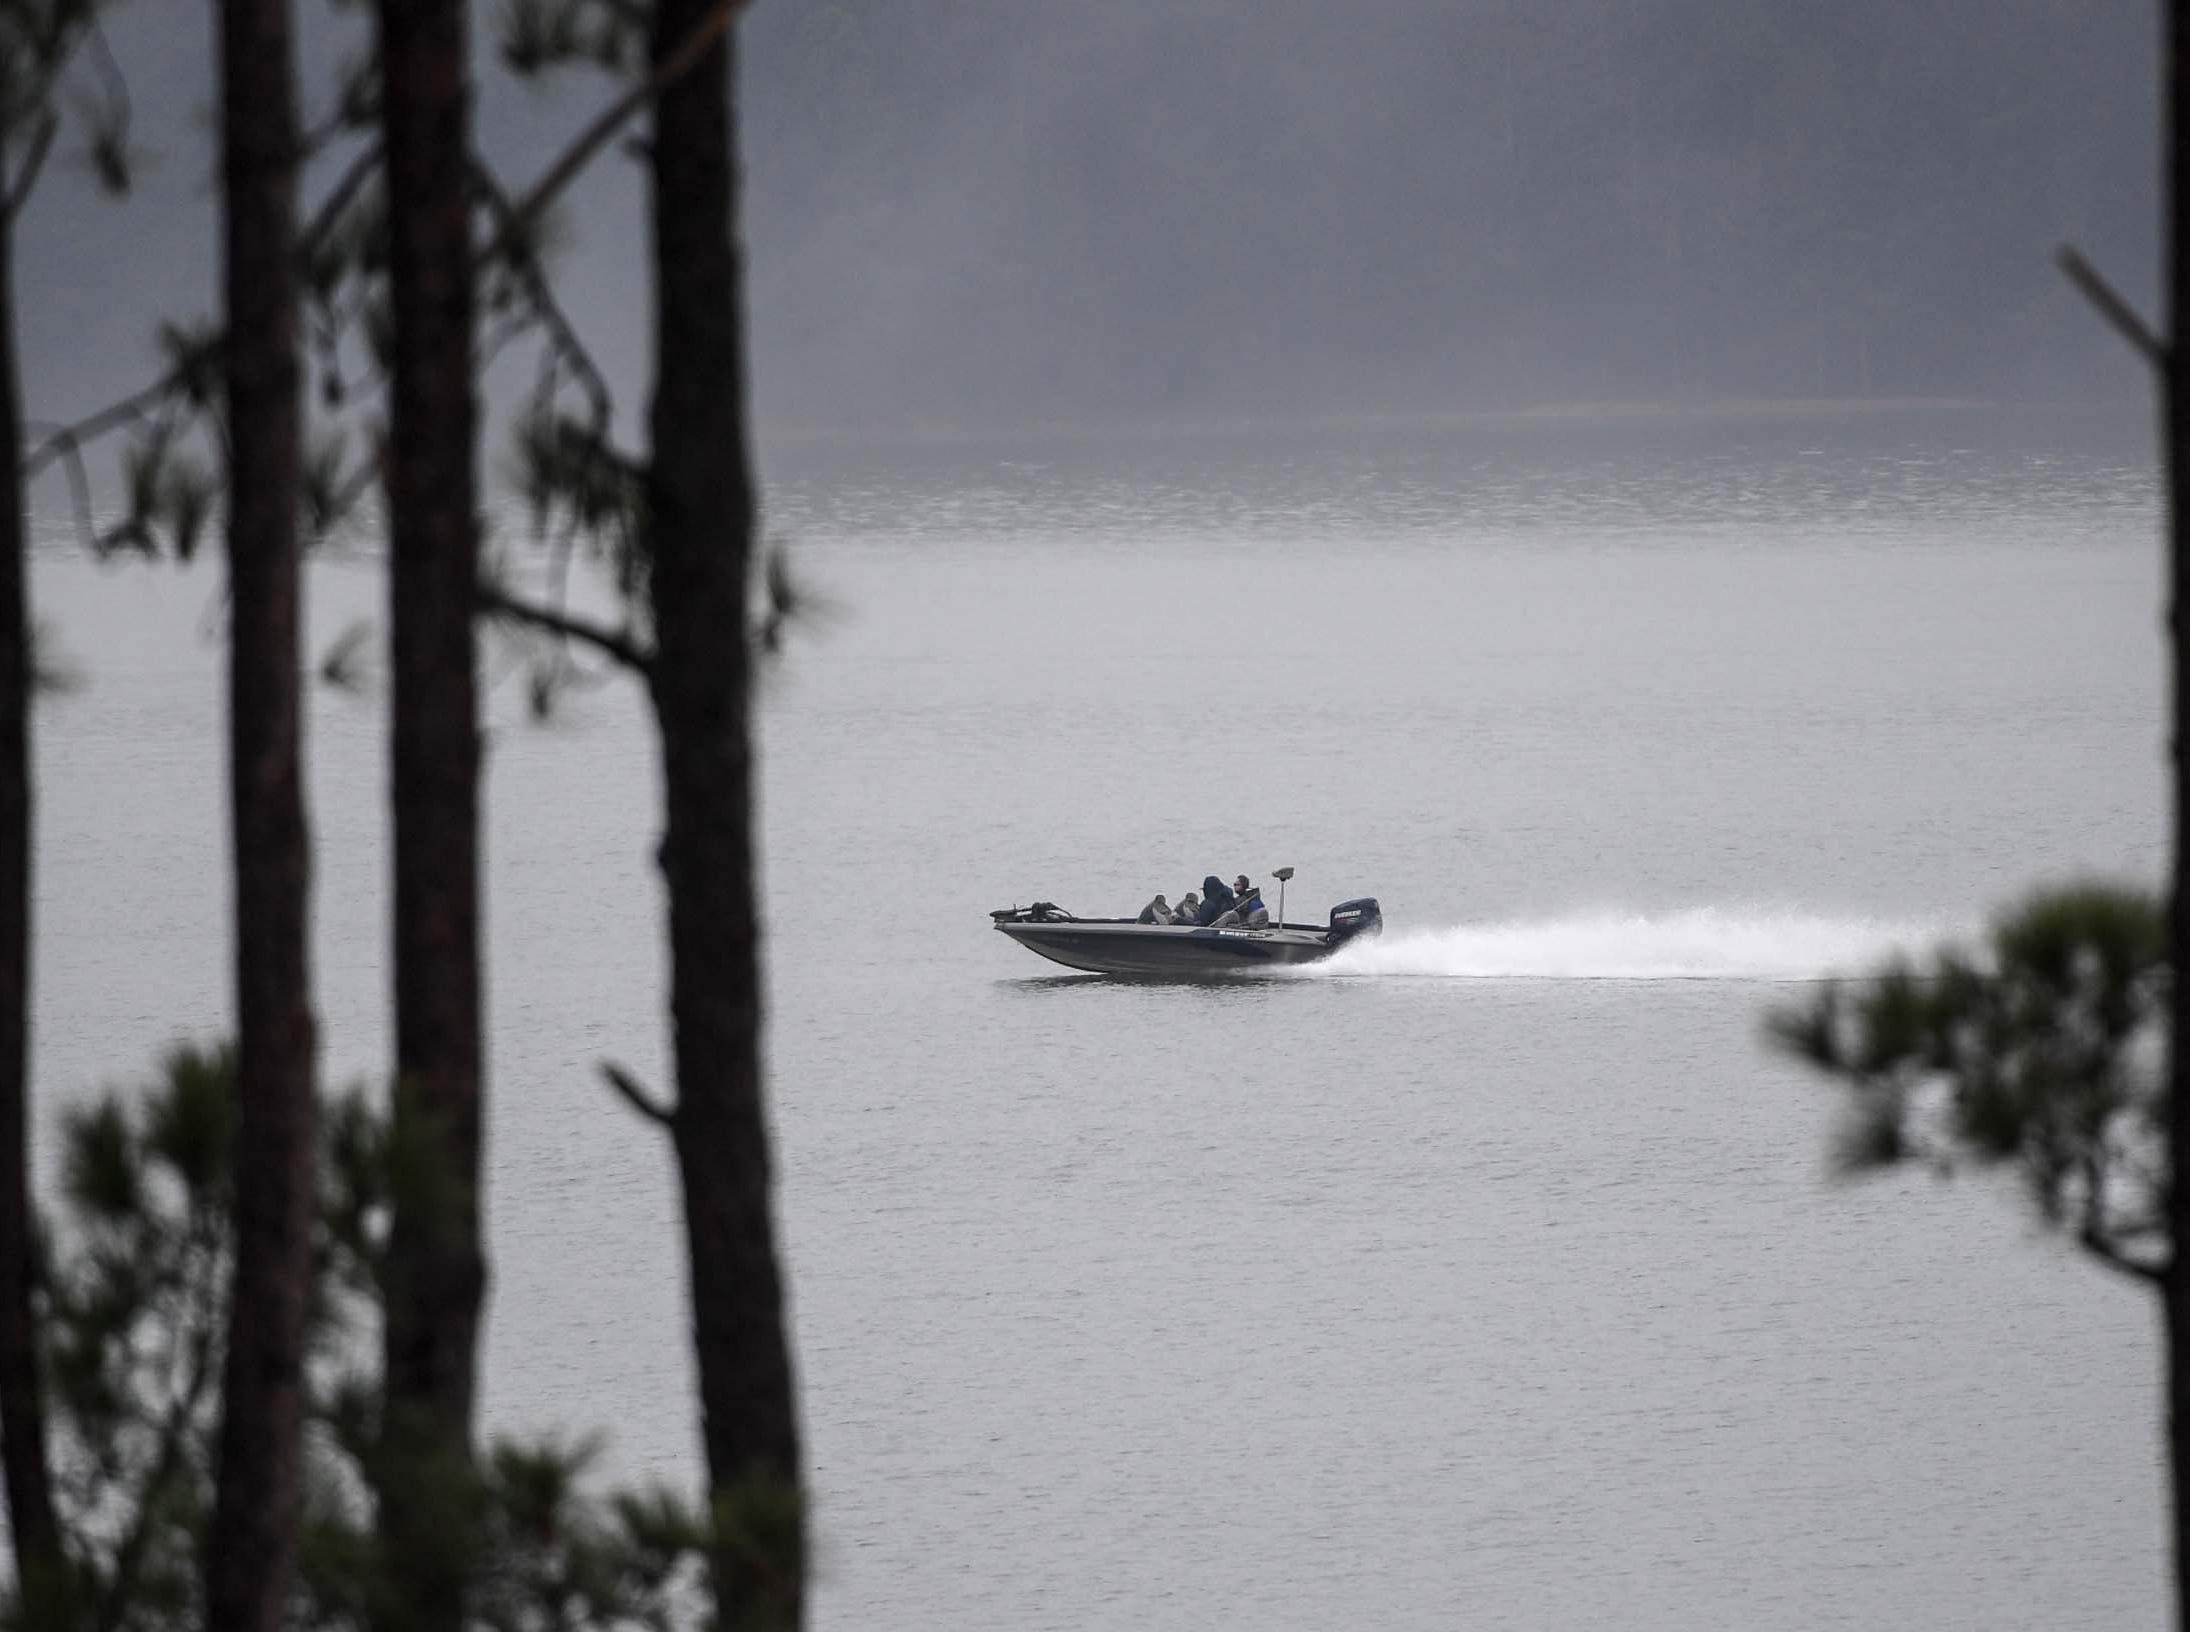 A boat with high school students moves around for practice before the Mossy Oak Fishing Bassmaster High School Open at the Green Pond Boat Landing on Hartwell Lake in Anderson Friday. The official event, with 87 schools from 15 states, starts at the boat landing at 6:45 a.m. Saturday morning.